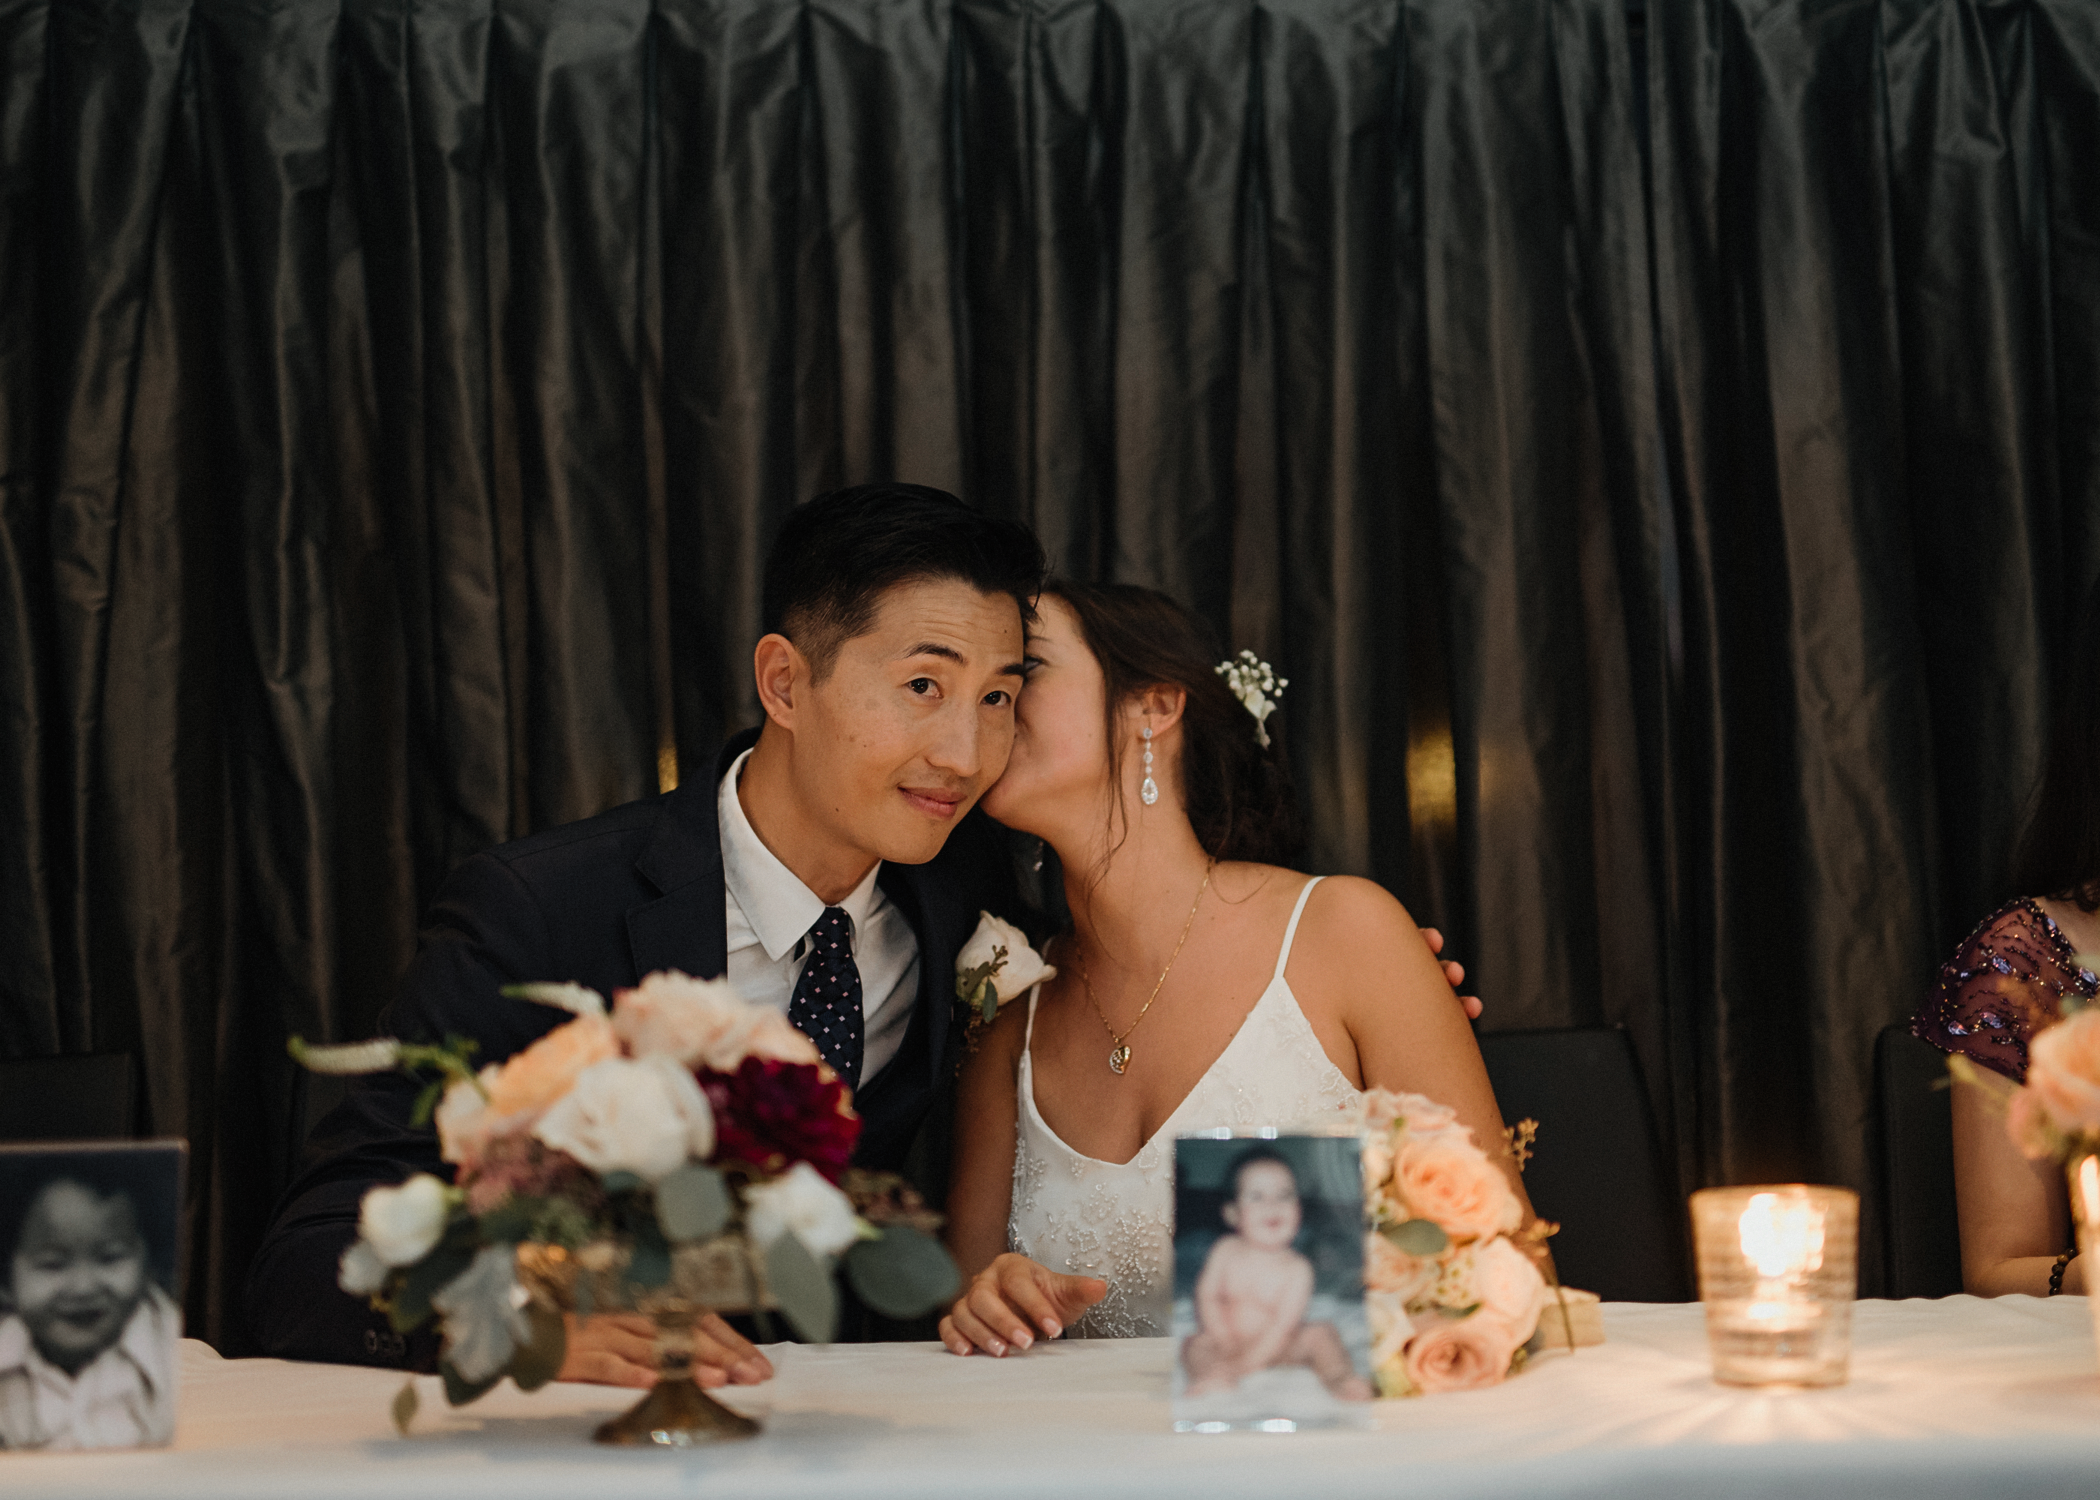 079-kaoverii-silva-az-wedding-vancouver-photography.png